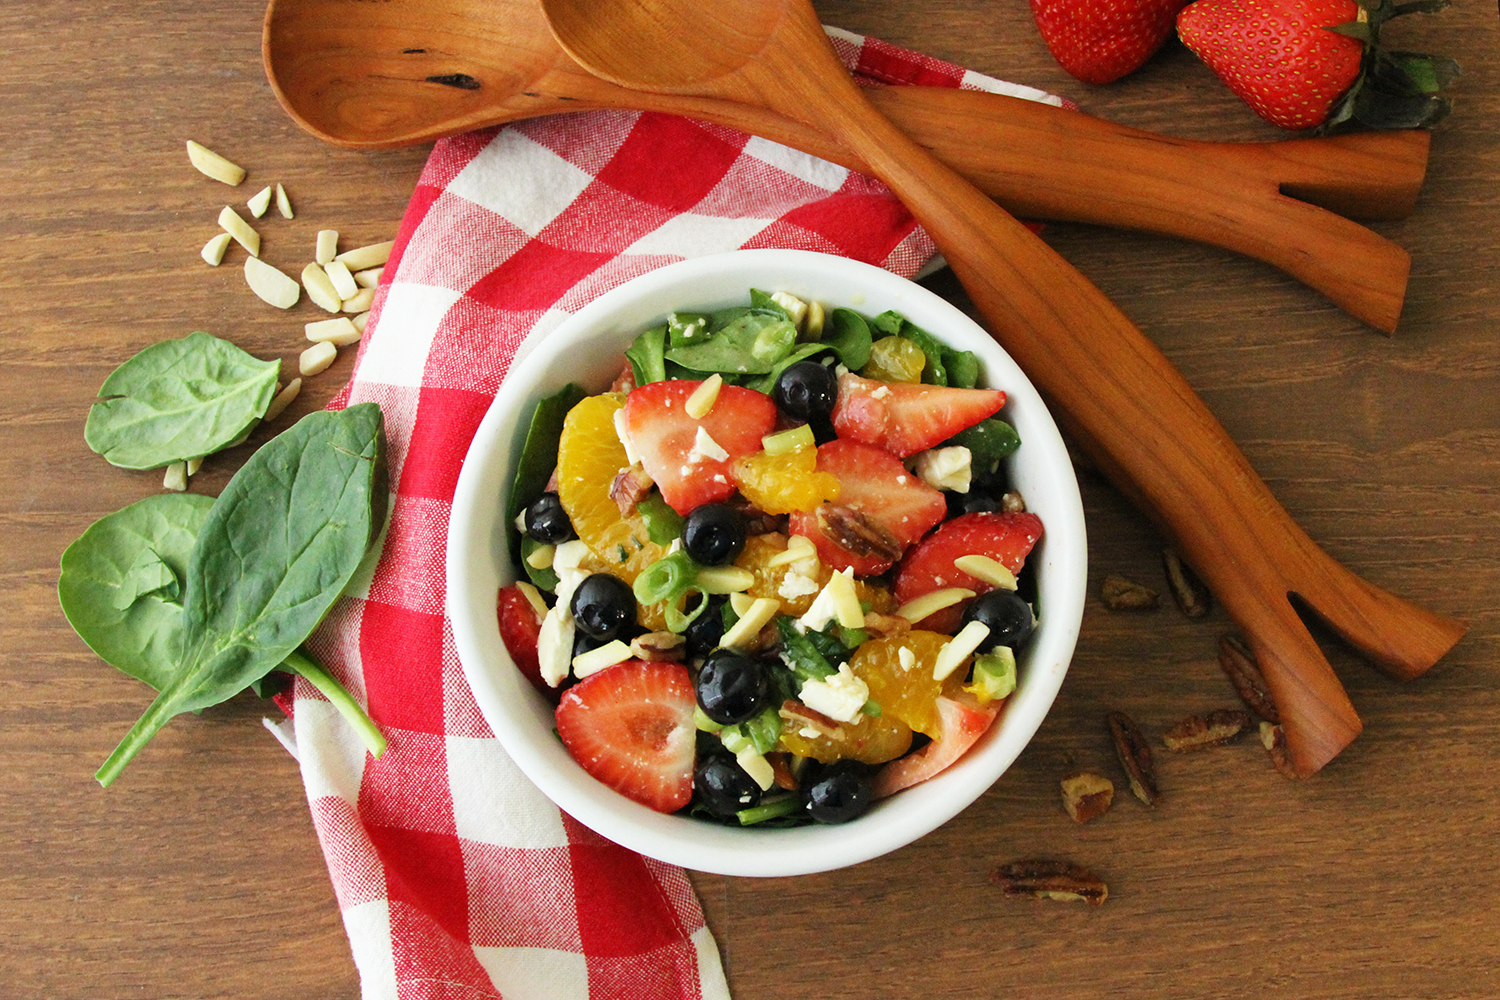 Strawberry Spinach Salad  Photo: Barb Brower